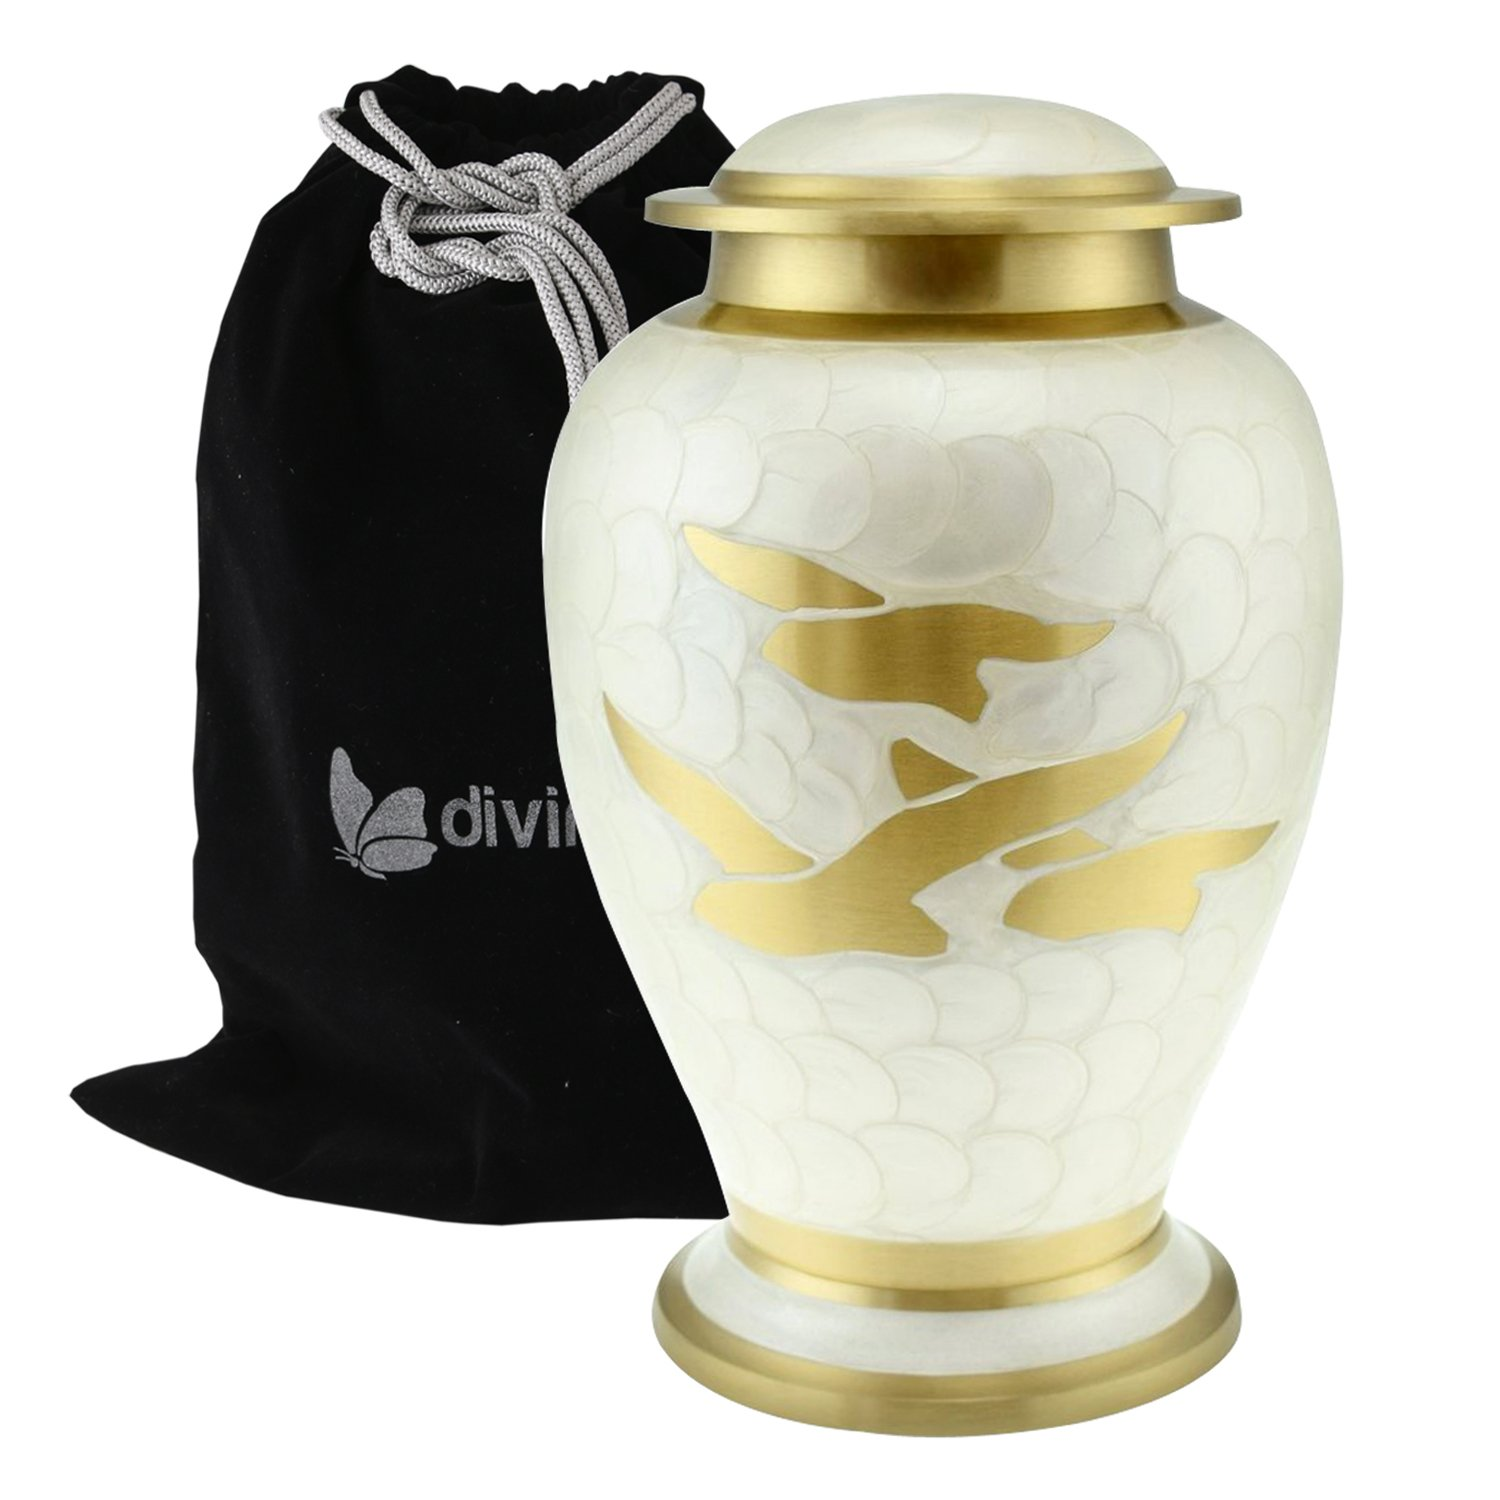 Divinityurns Pearl White with Golden Wings of Love Cremation Urn - Large Wings of Freedom Urn - Solid Brass 100% Handcrafted Affordable Golden Wings Urn for Human Ashes with Free Velvet Bag IURE110